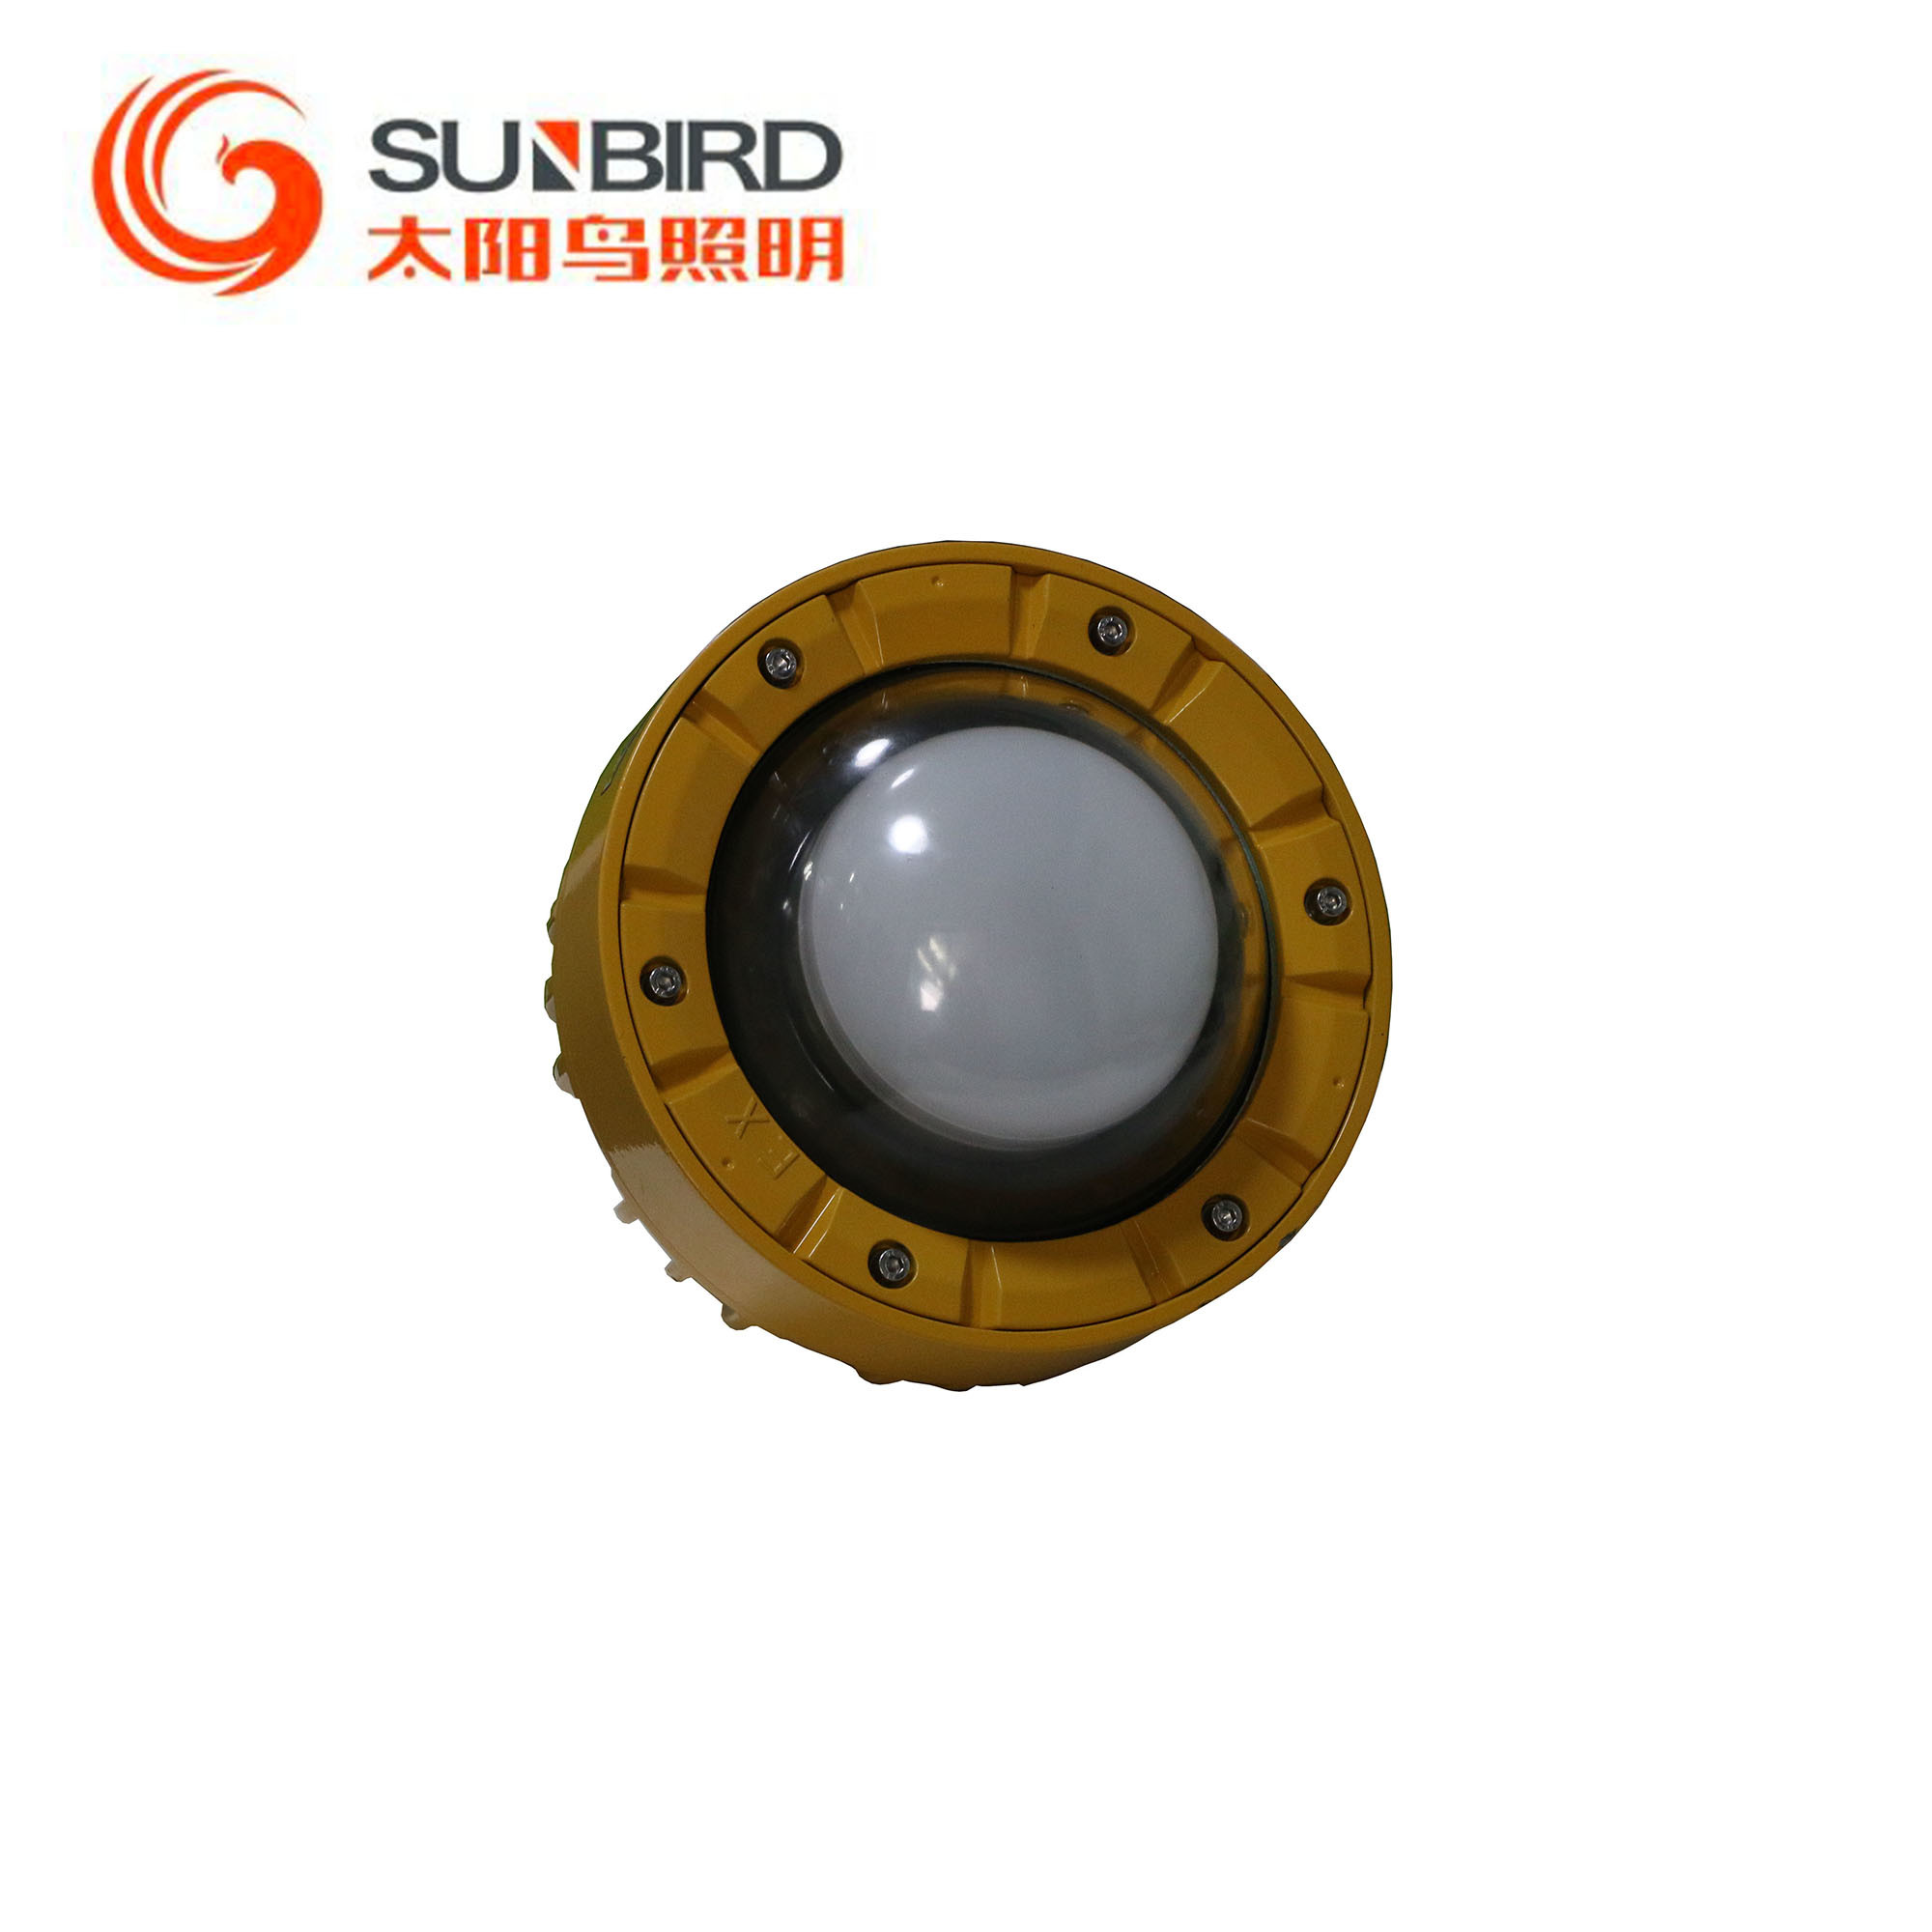 Sunbird Industrial Lighting Series LED Explosion Proof Light pictures & photos